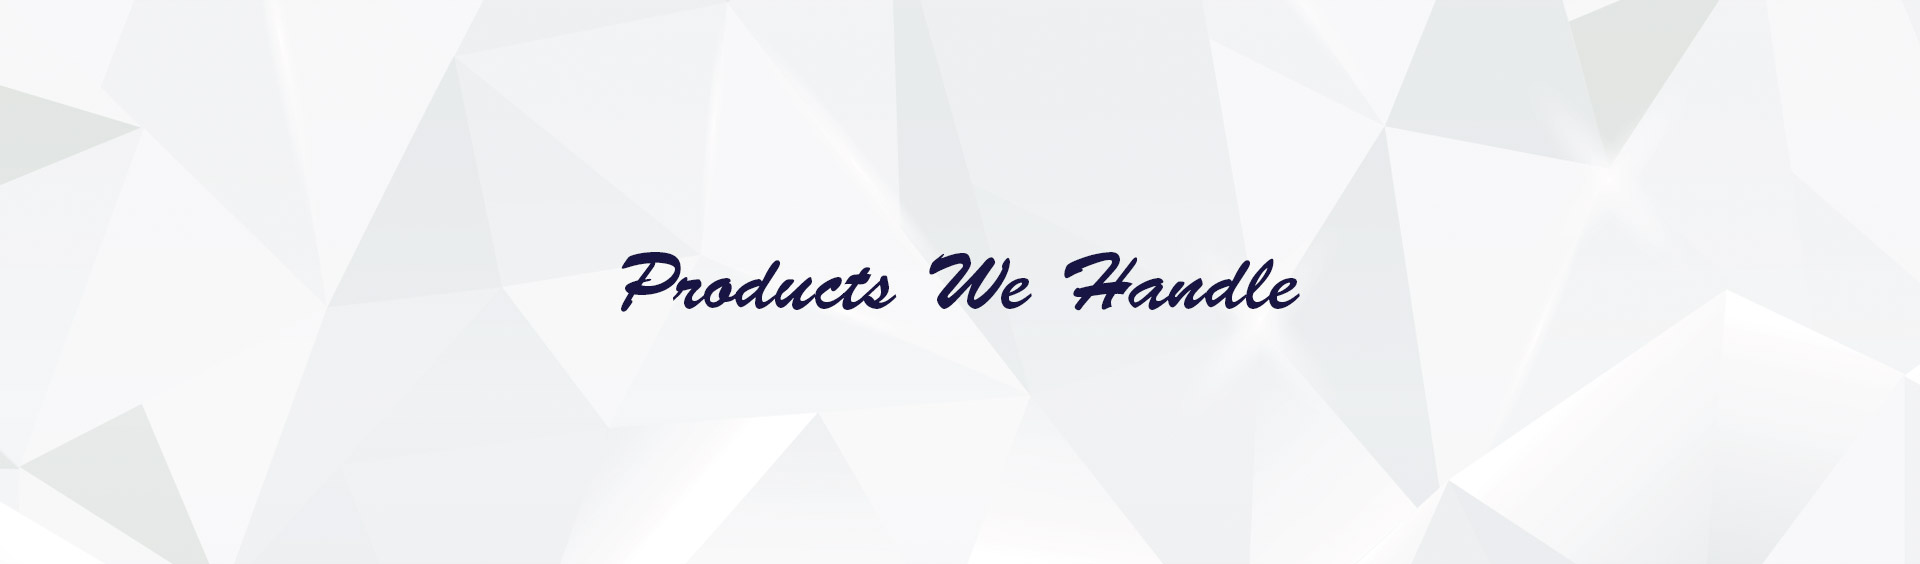 Products we handle